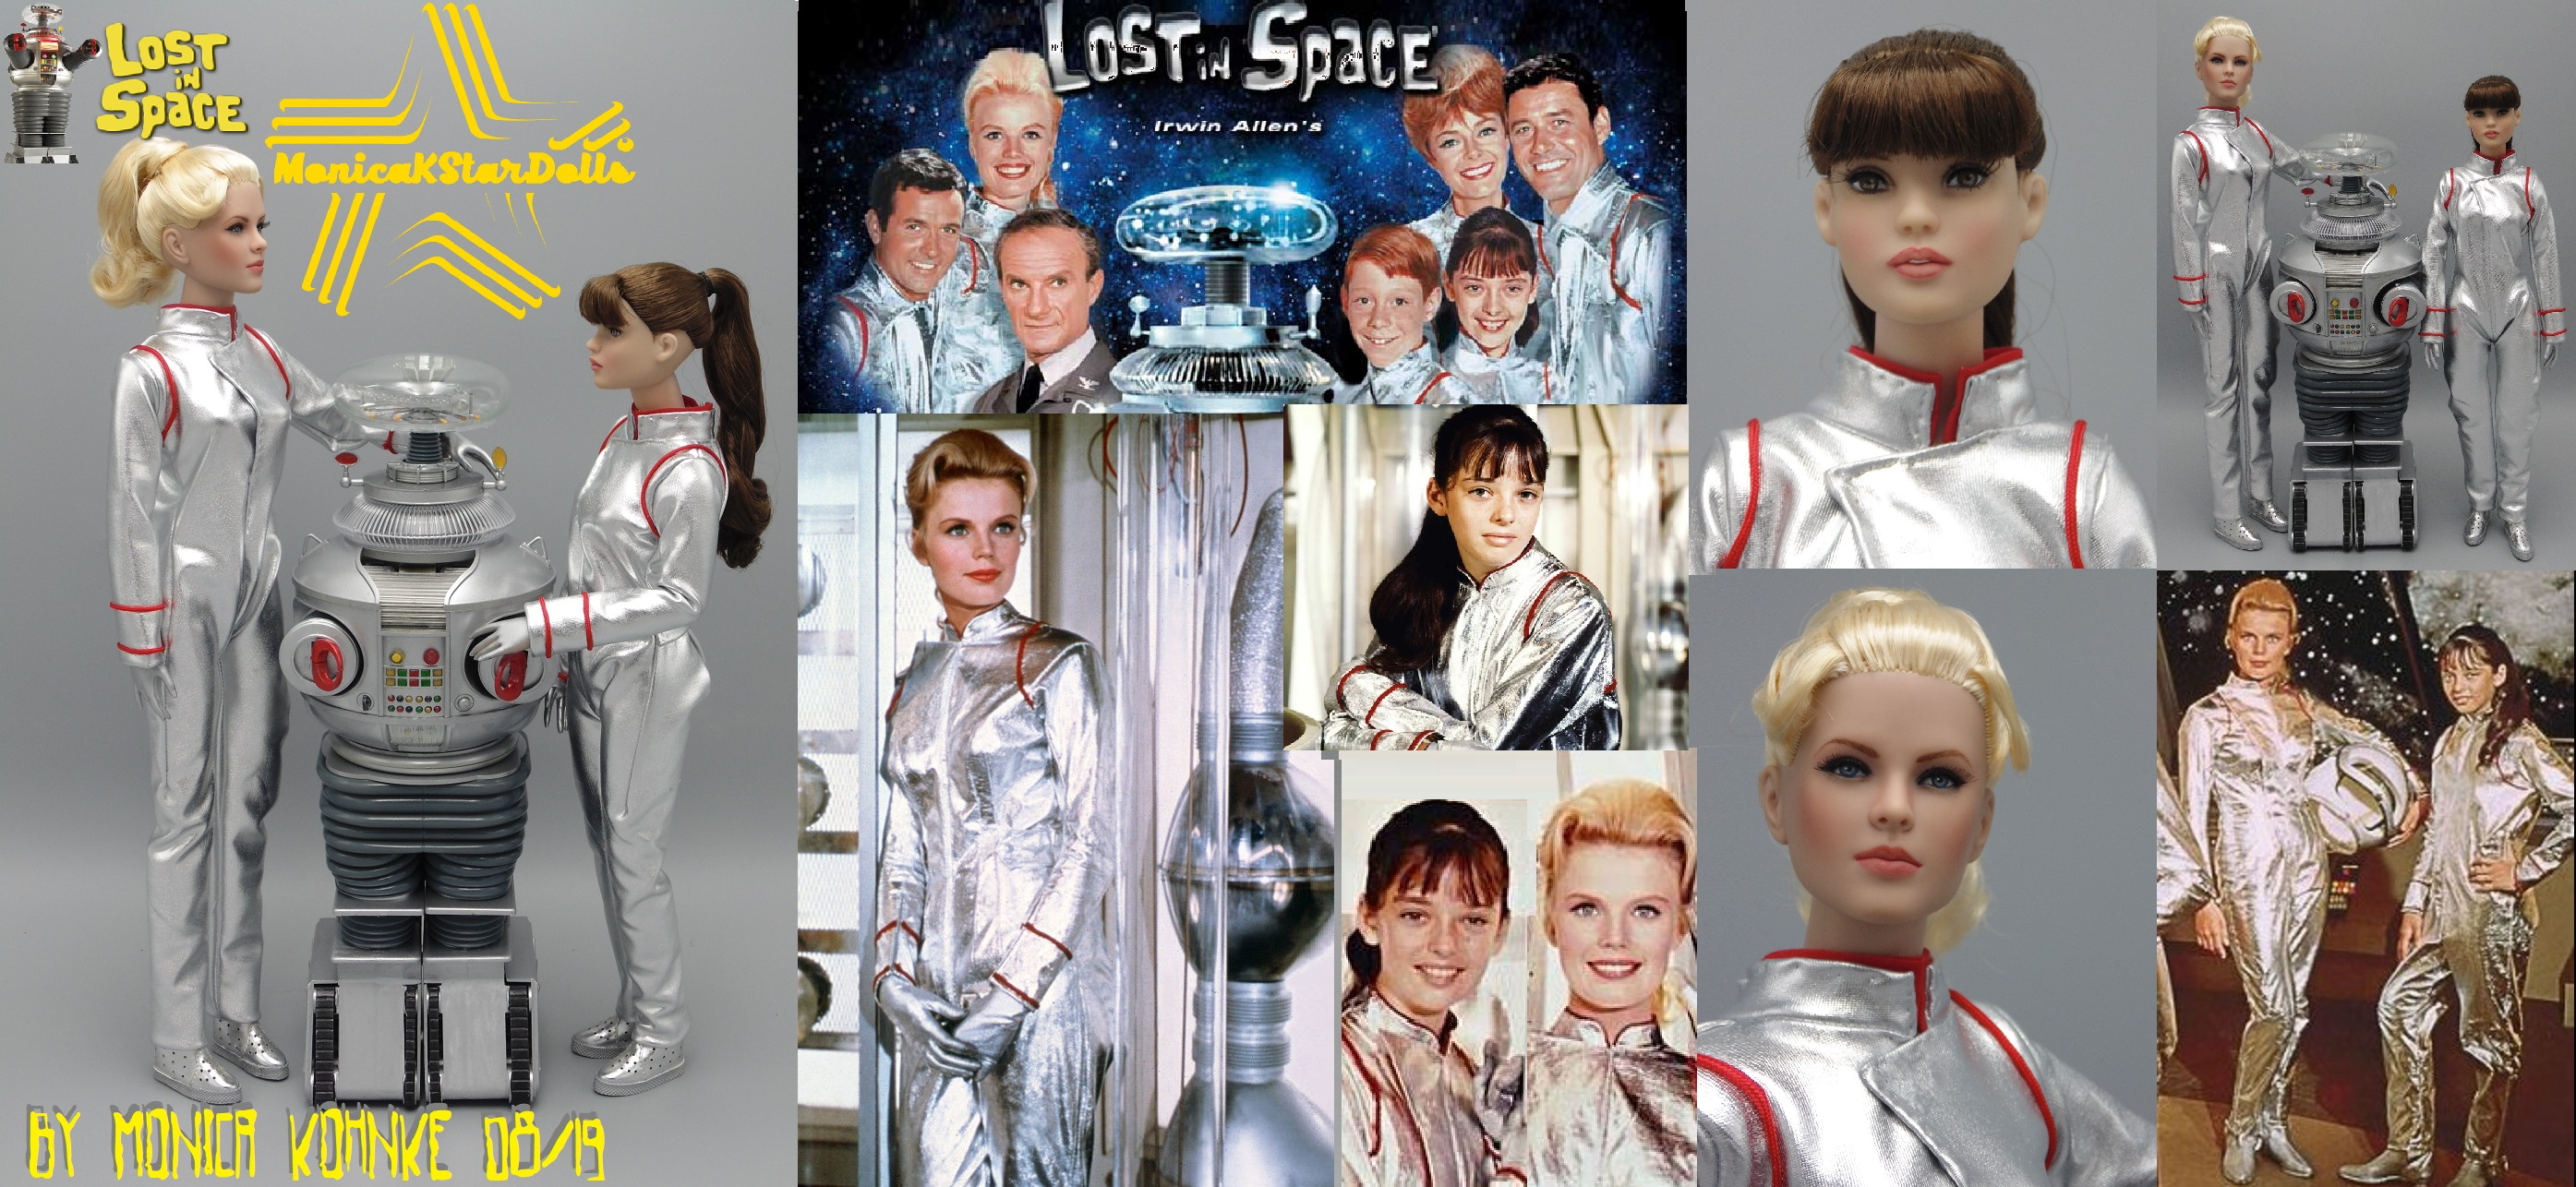 Judy and Penny Robinson, Lost in Space s